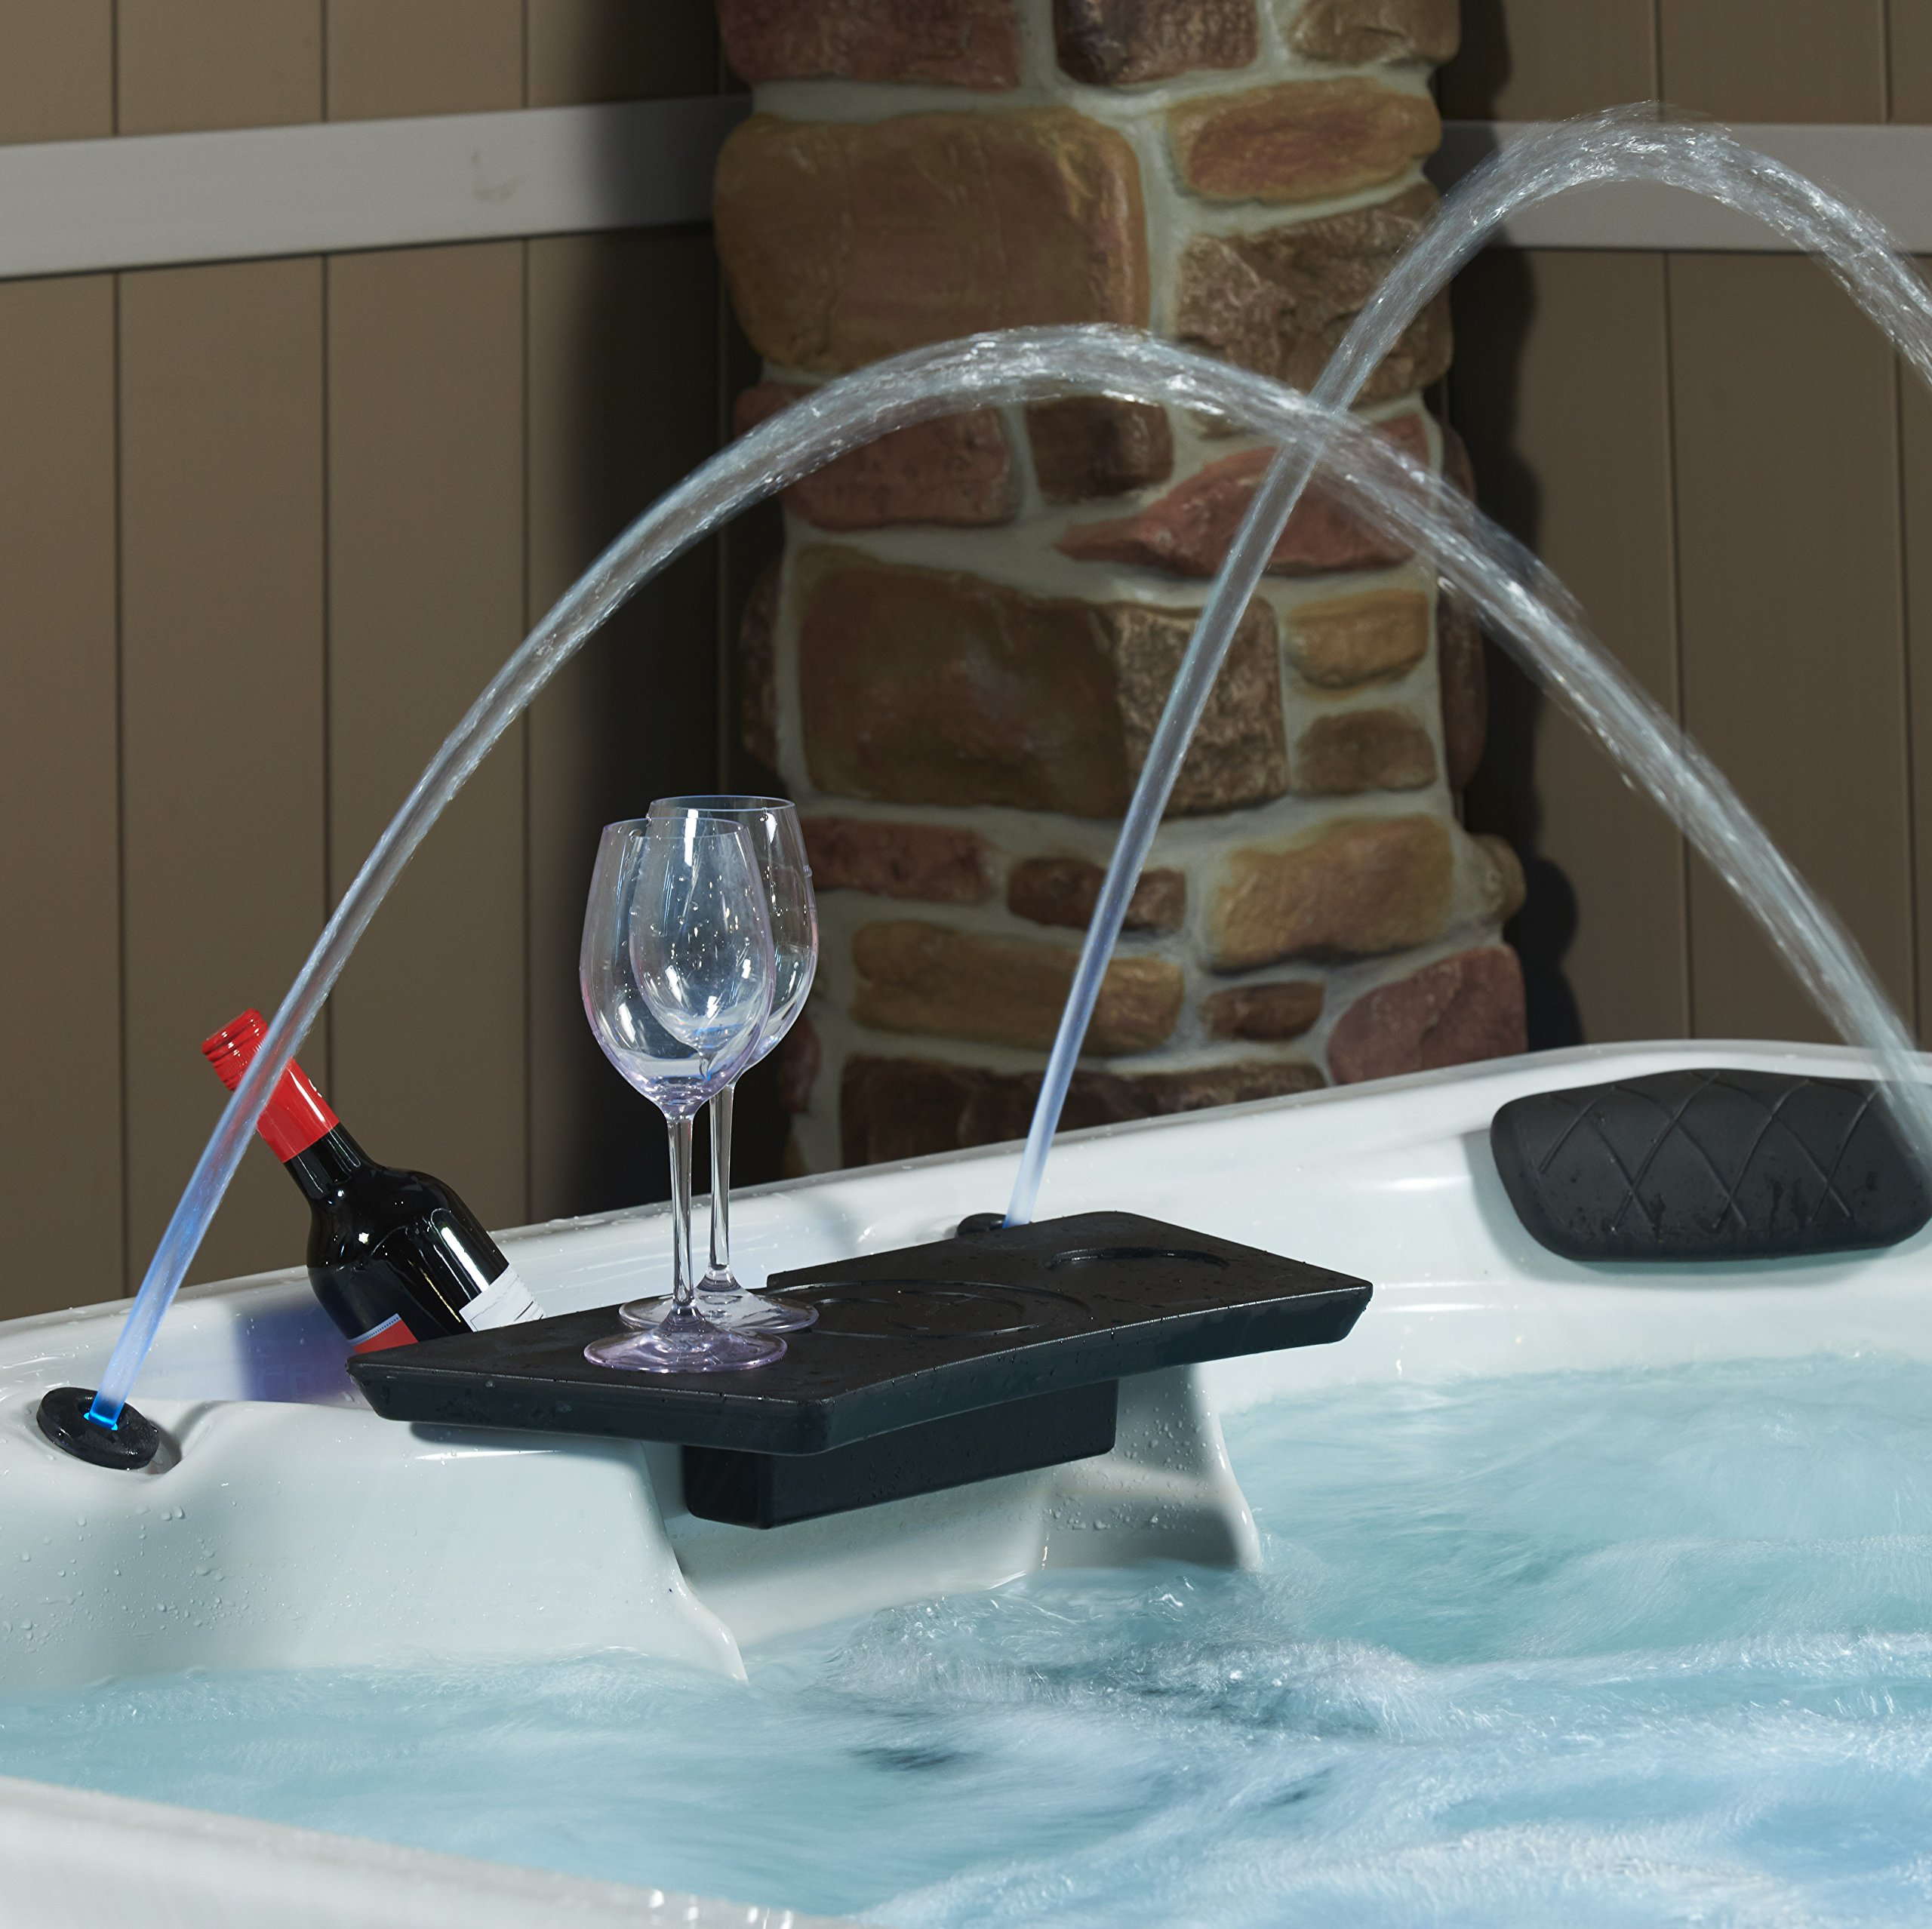 Essential Hot Tubs - Adelaide 30 Jet Confer Grey/Sterling Silver by Essential Hot Tubs (Image #6)